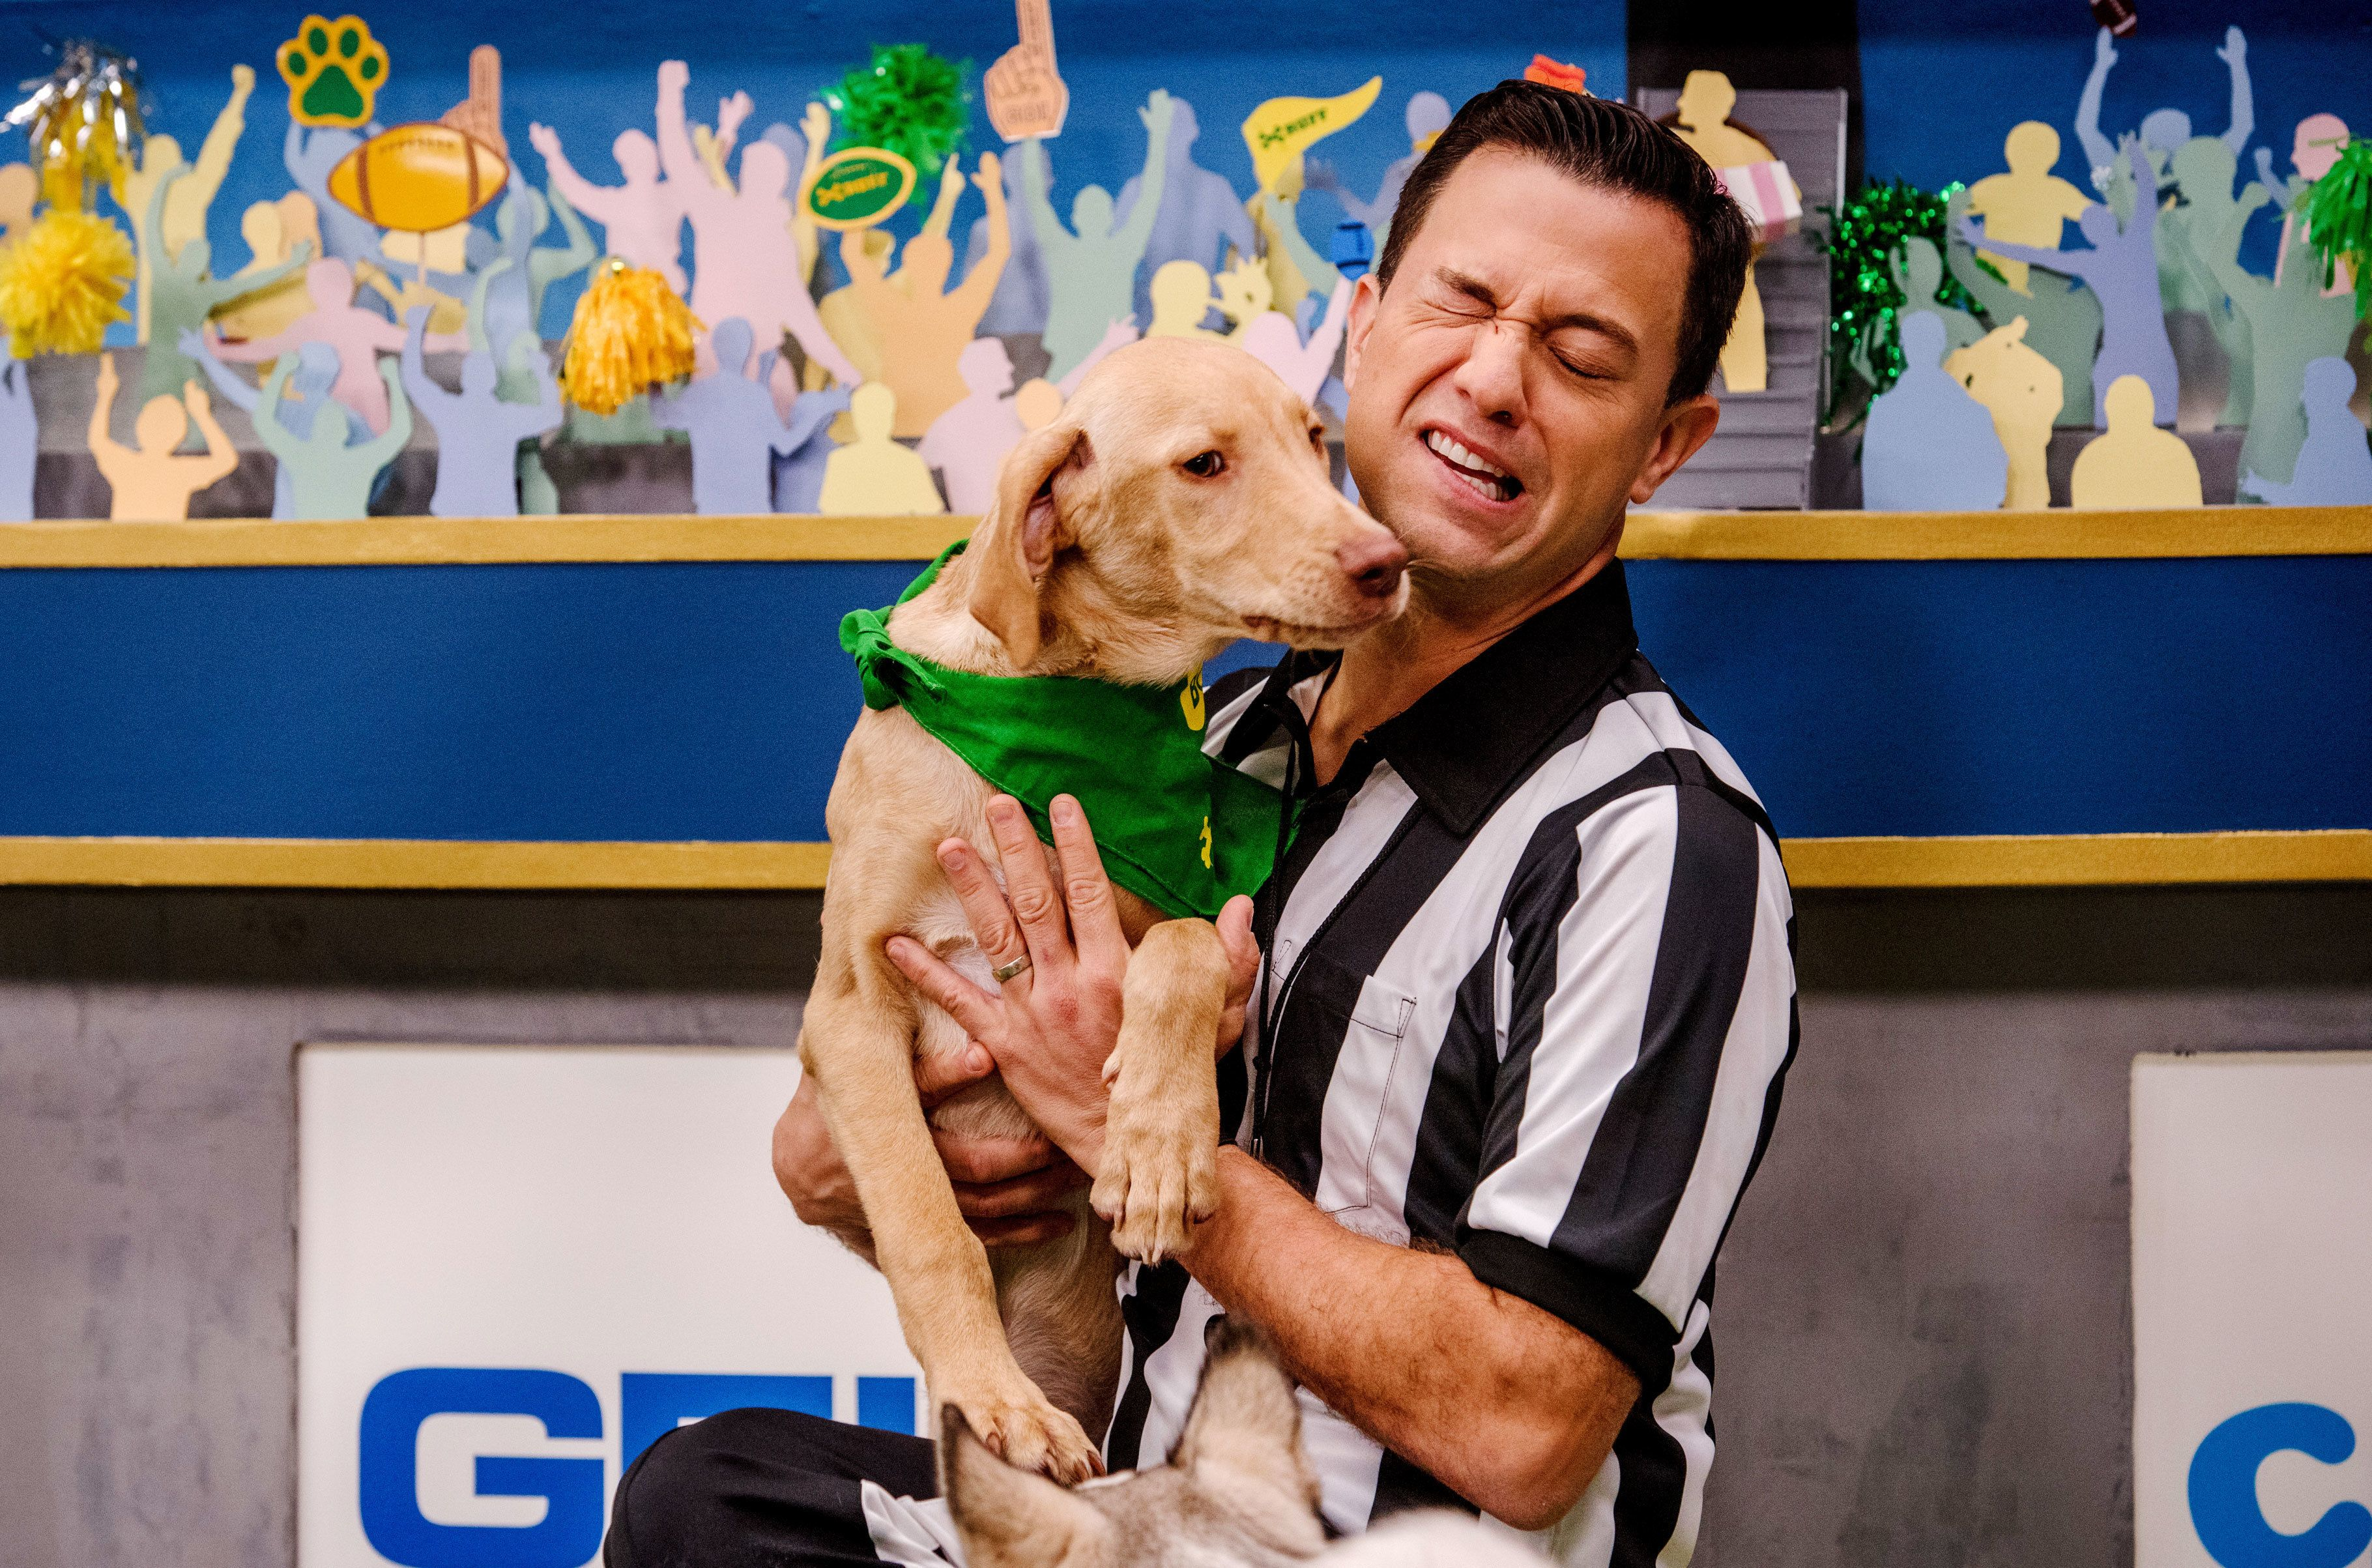 Dan Schachner, aka Dan the Ruff-eree, holds up touchdown-scorer Hank during the filming of the Puppy Bowl in New York City on